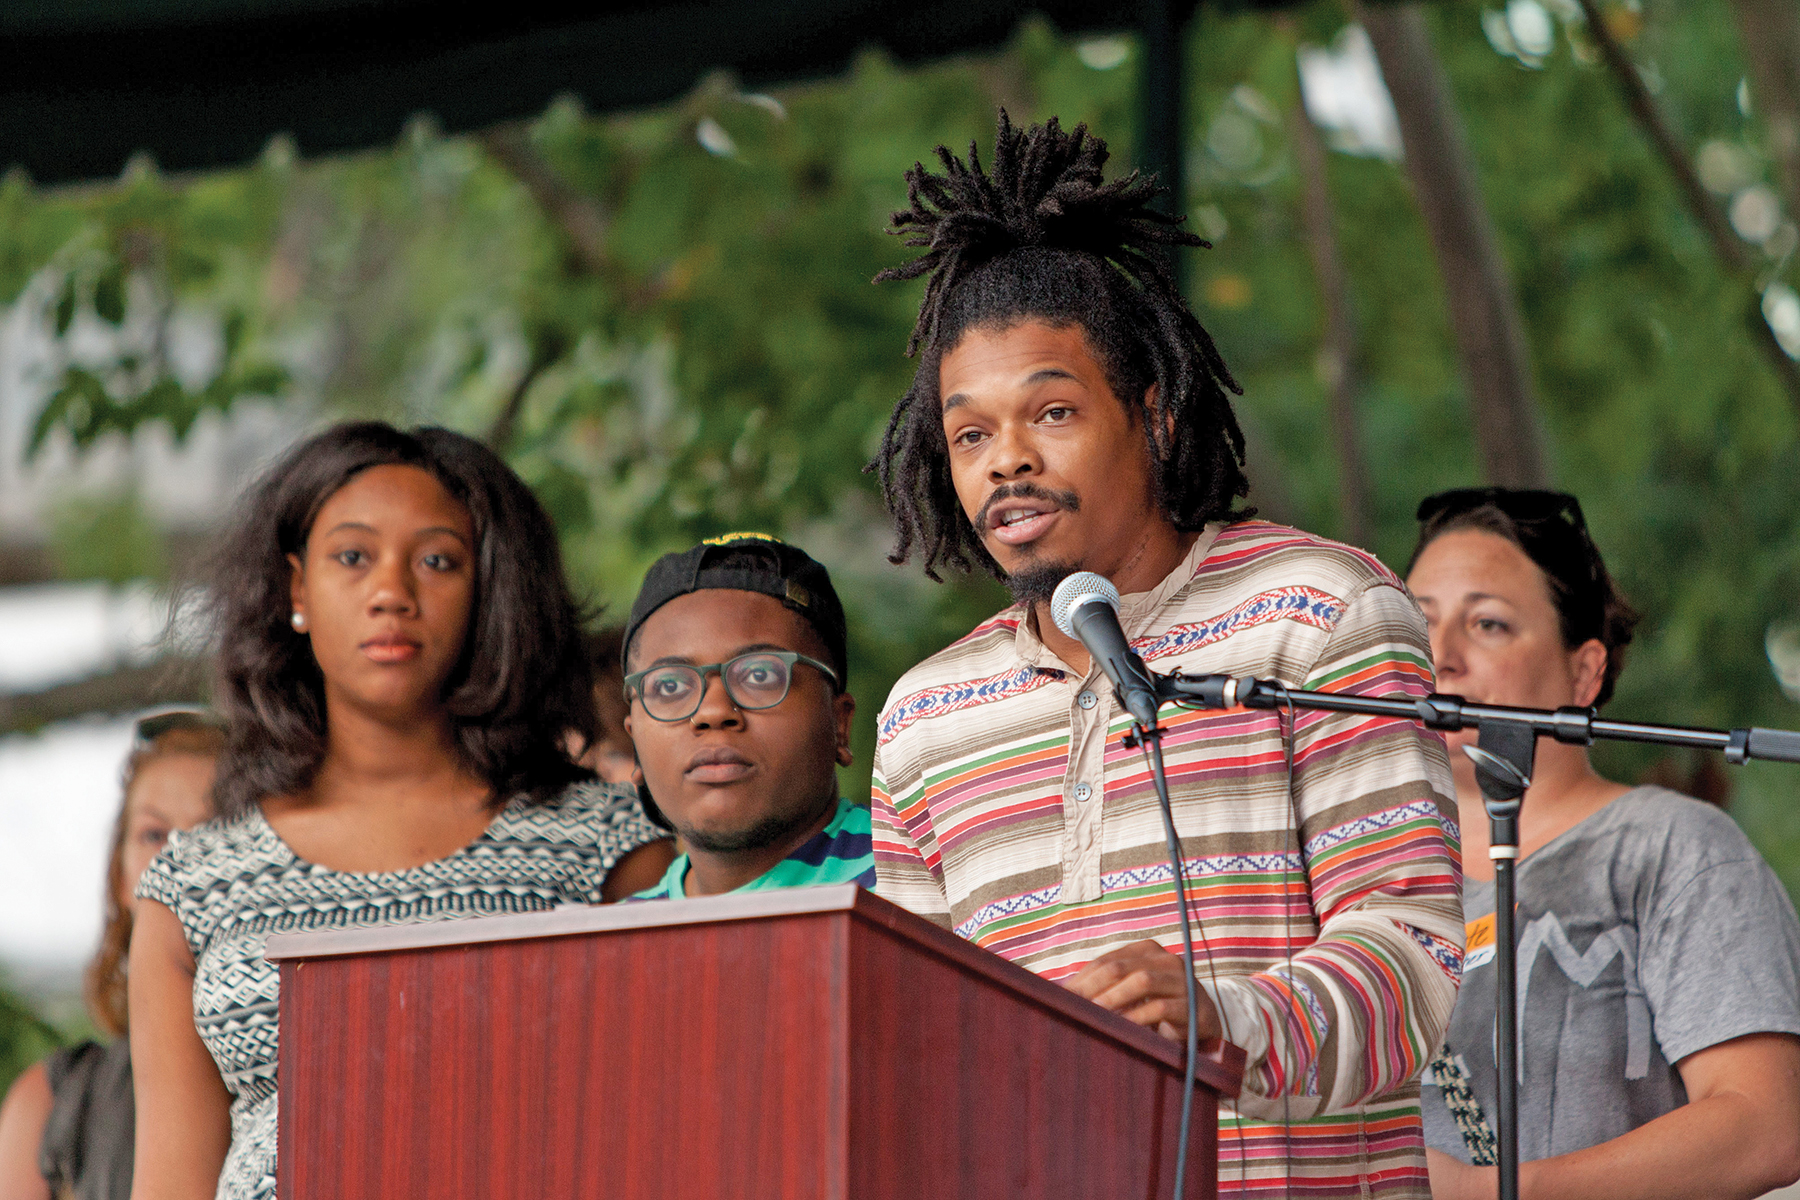 Black Lives Matter organizer David Irving Allen spoke to the crowd about understanding the past in order to change the future.  Photo courtesy Ivan Cutler